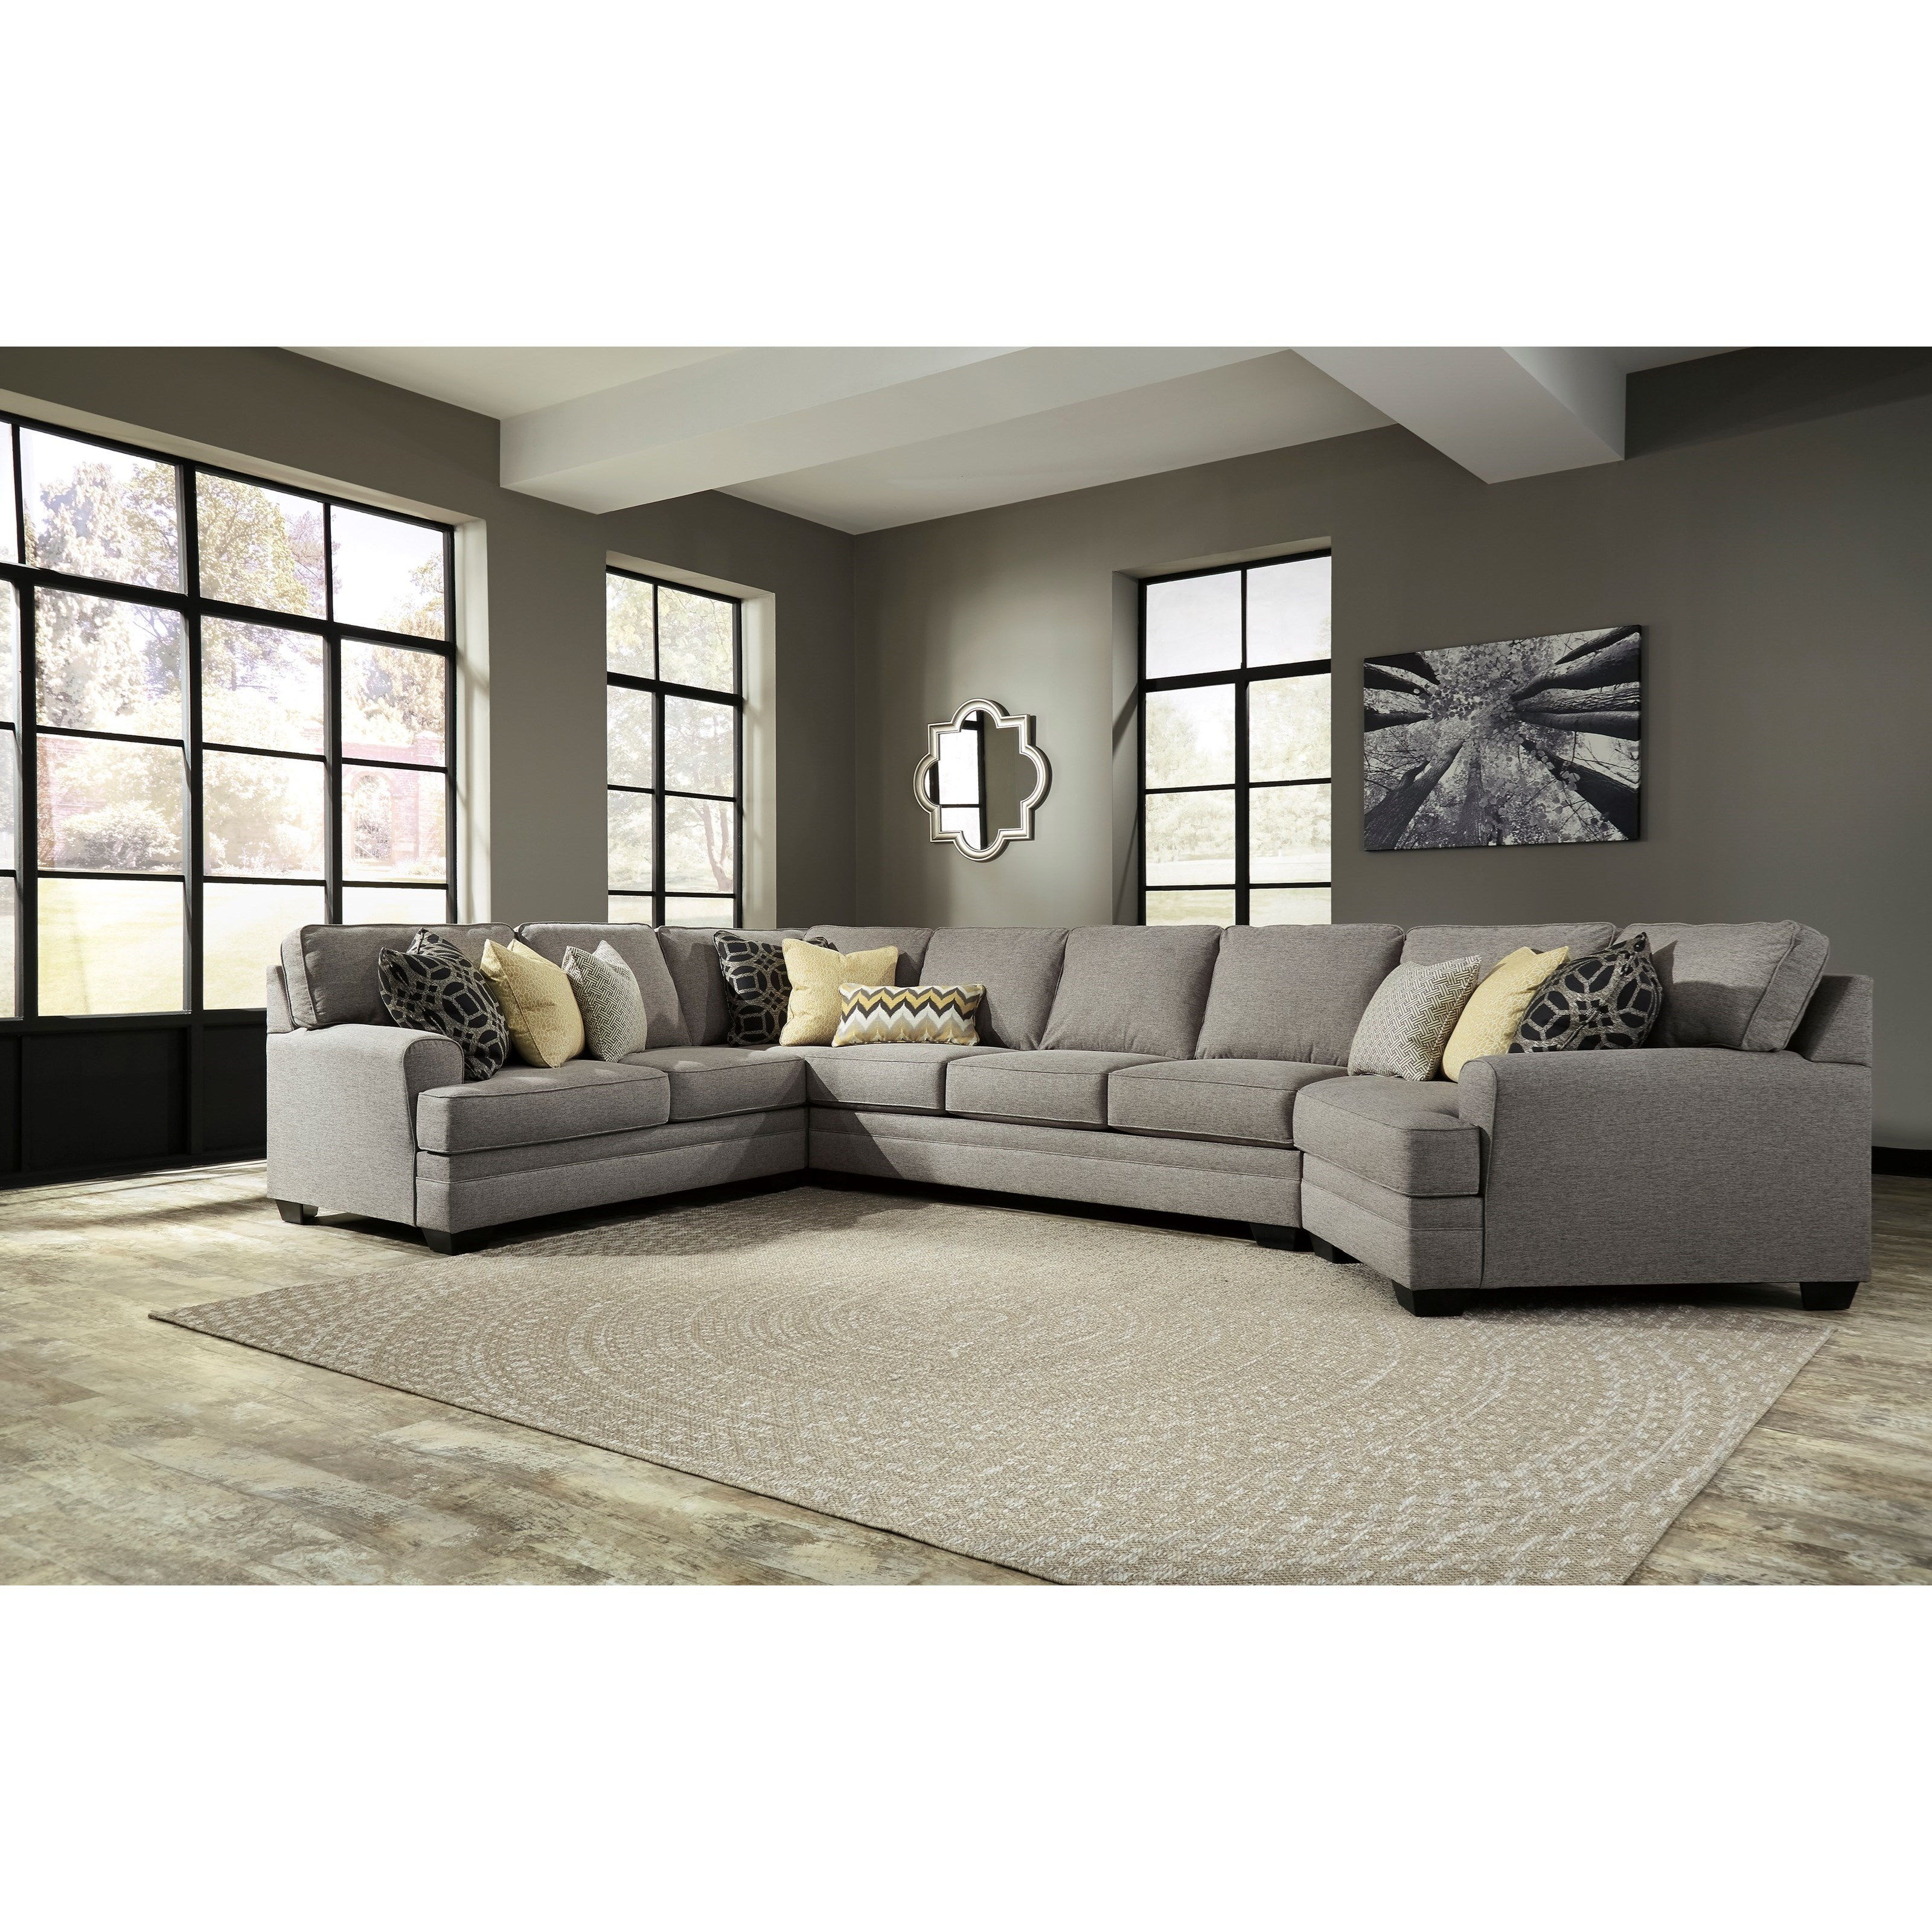 Benchcraft Cresson Contemporary 4 Piece Sectional W/ Cuddler U0026 Armless Sofa